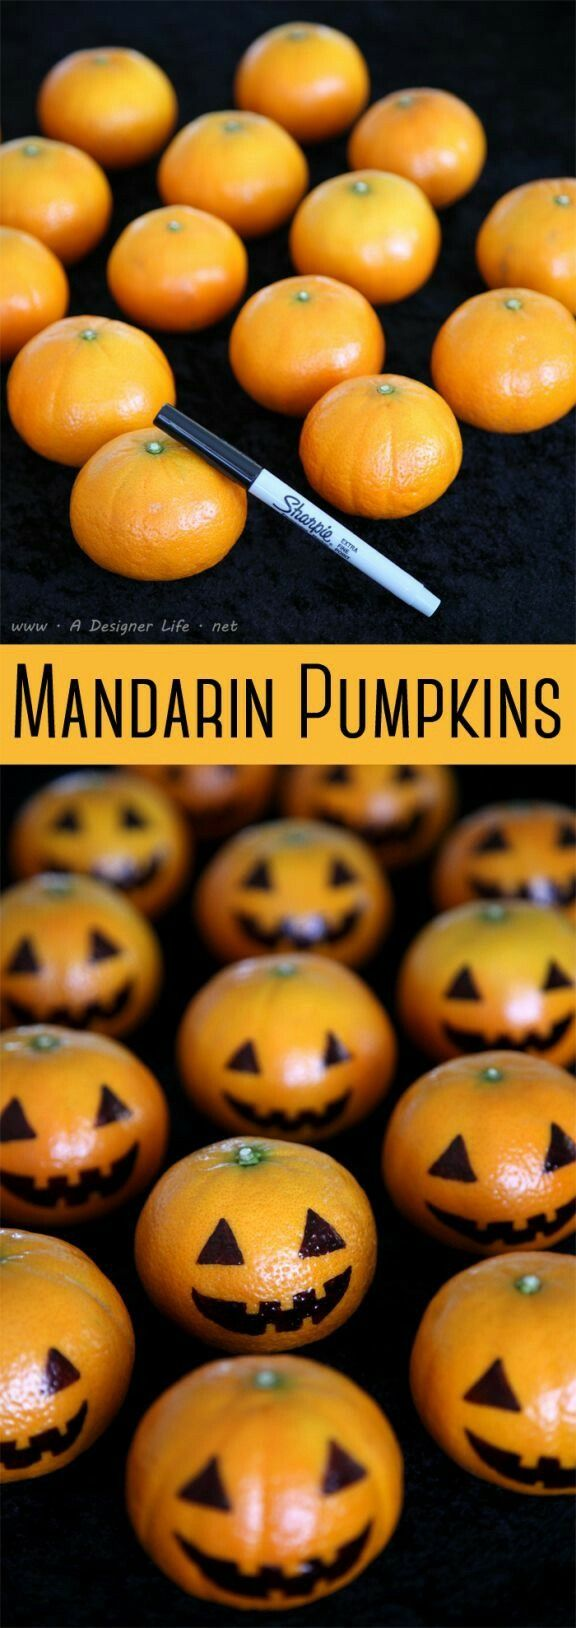 Mandarin pumpkin look alikes